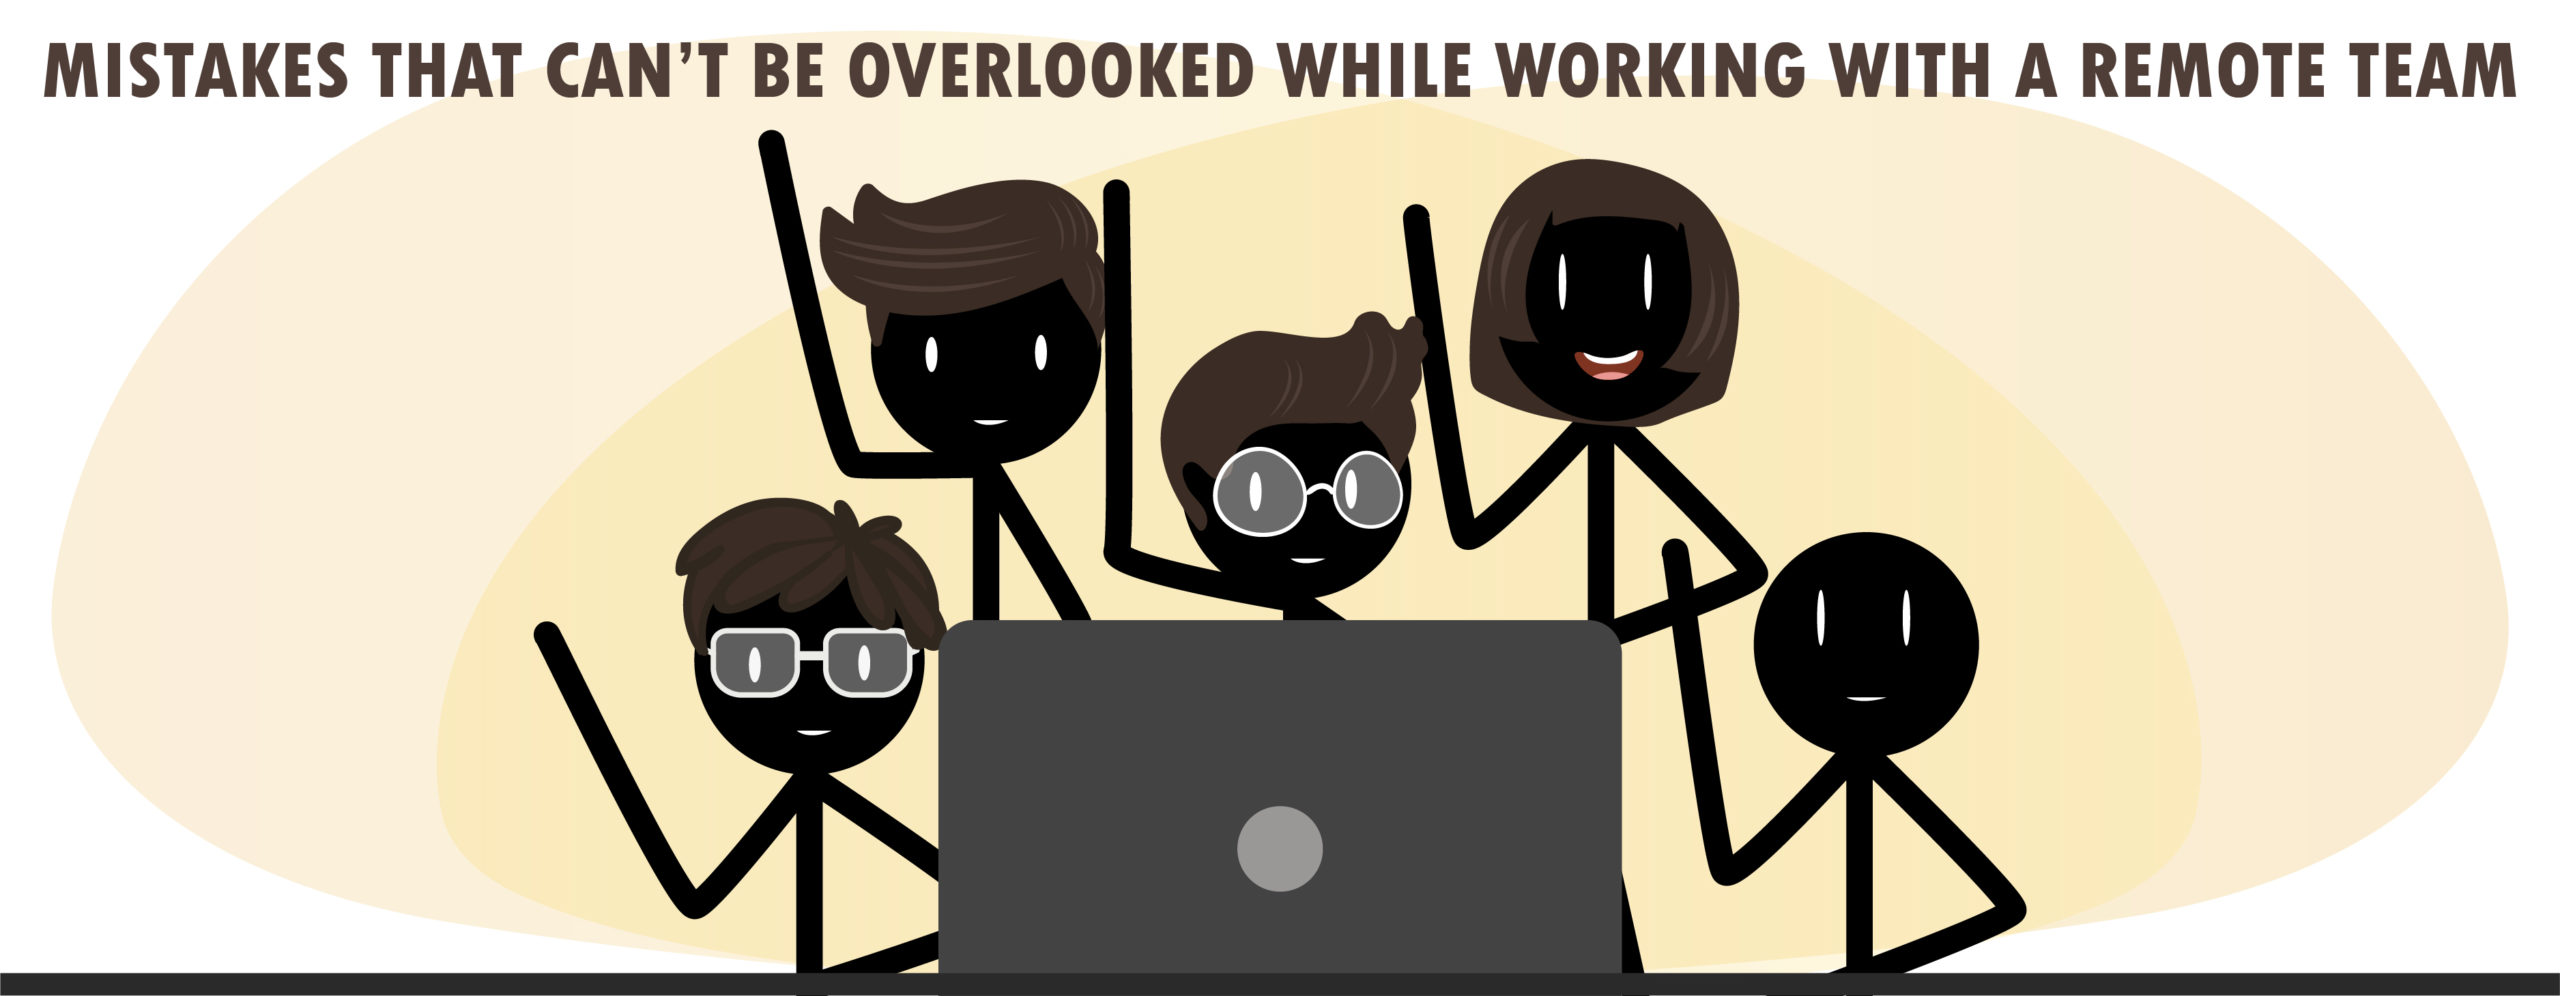 Mistakes That Can't Be Overlooked While Working With A Remote Team